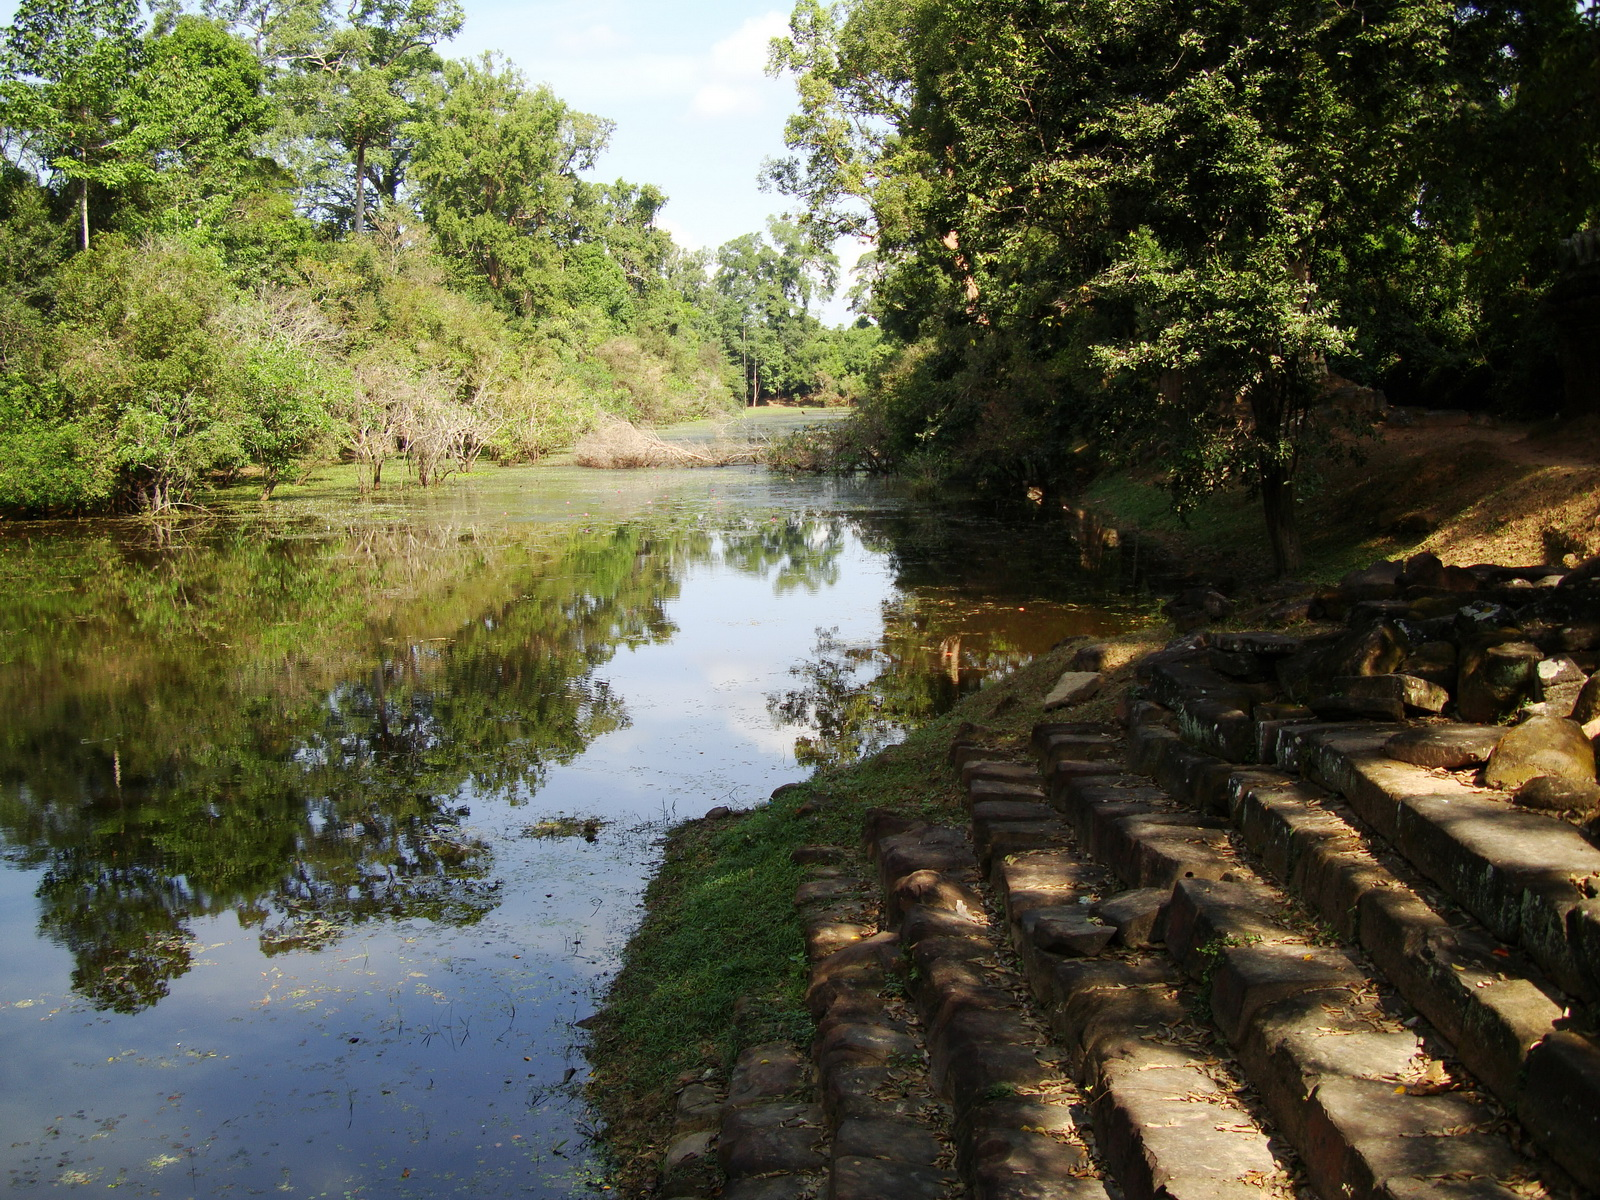 Preah Khan Temple moat west naga bridge Angkor Thom 02